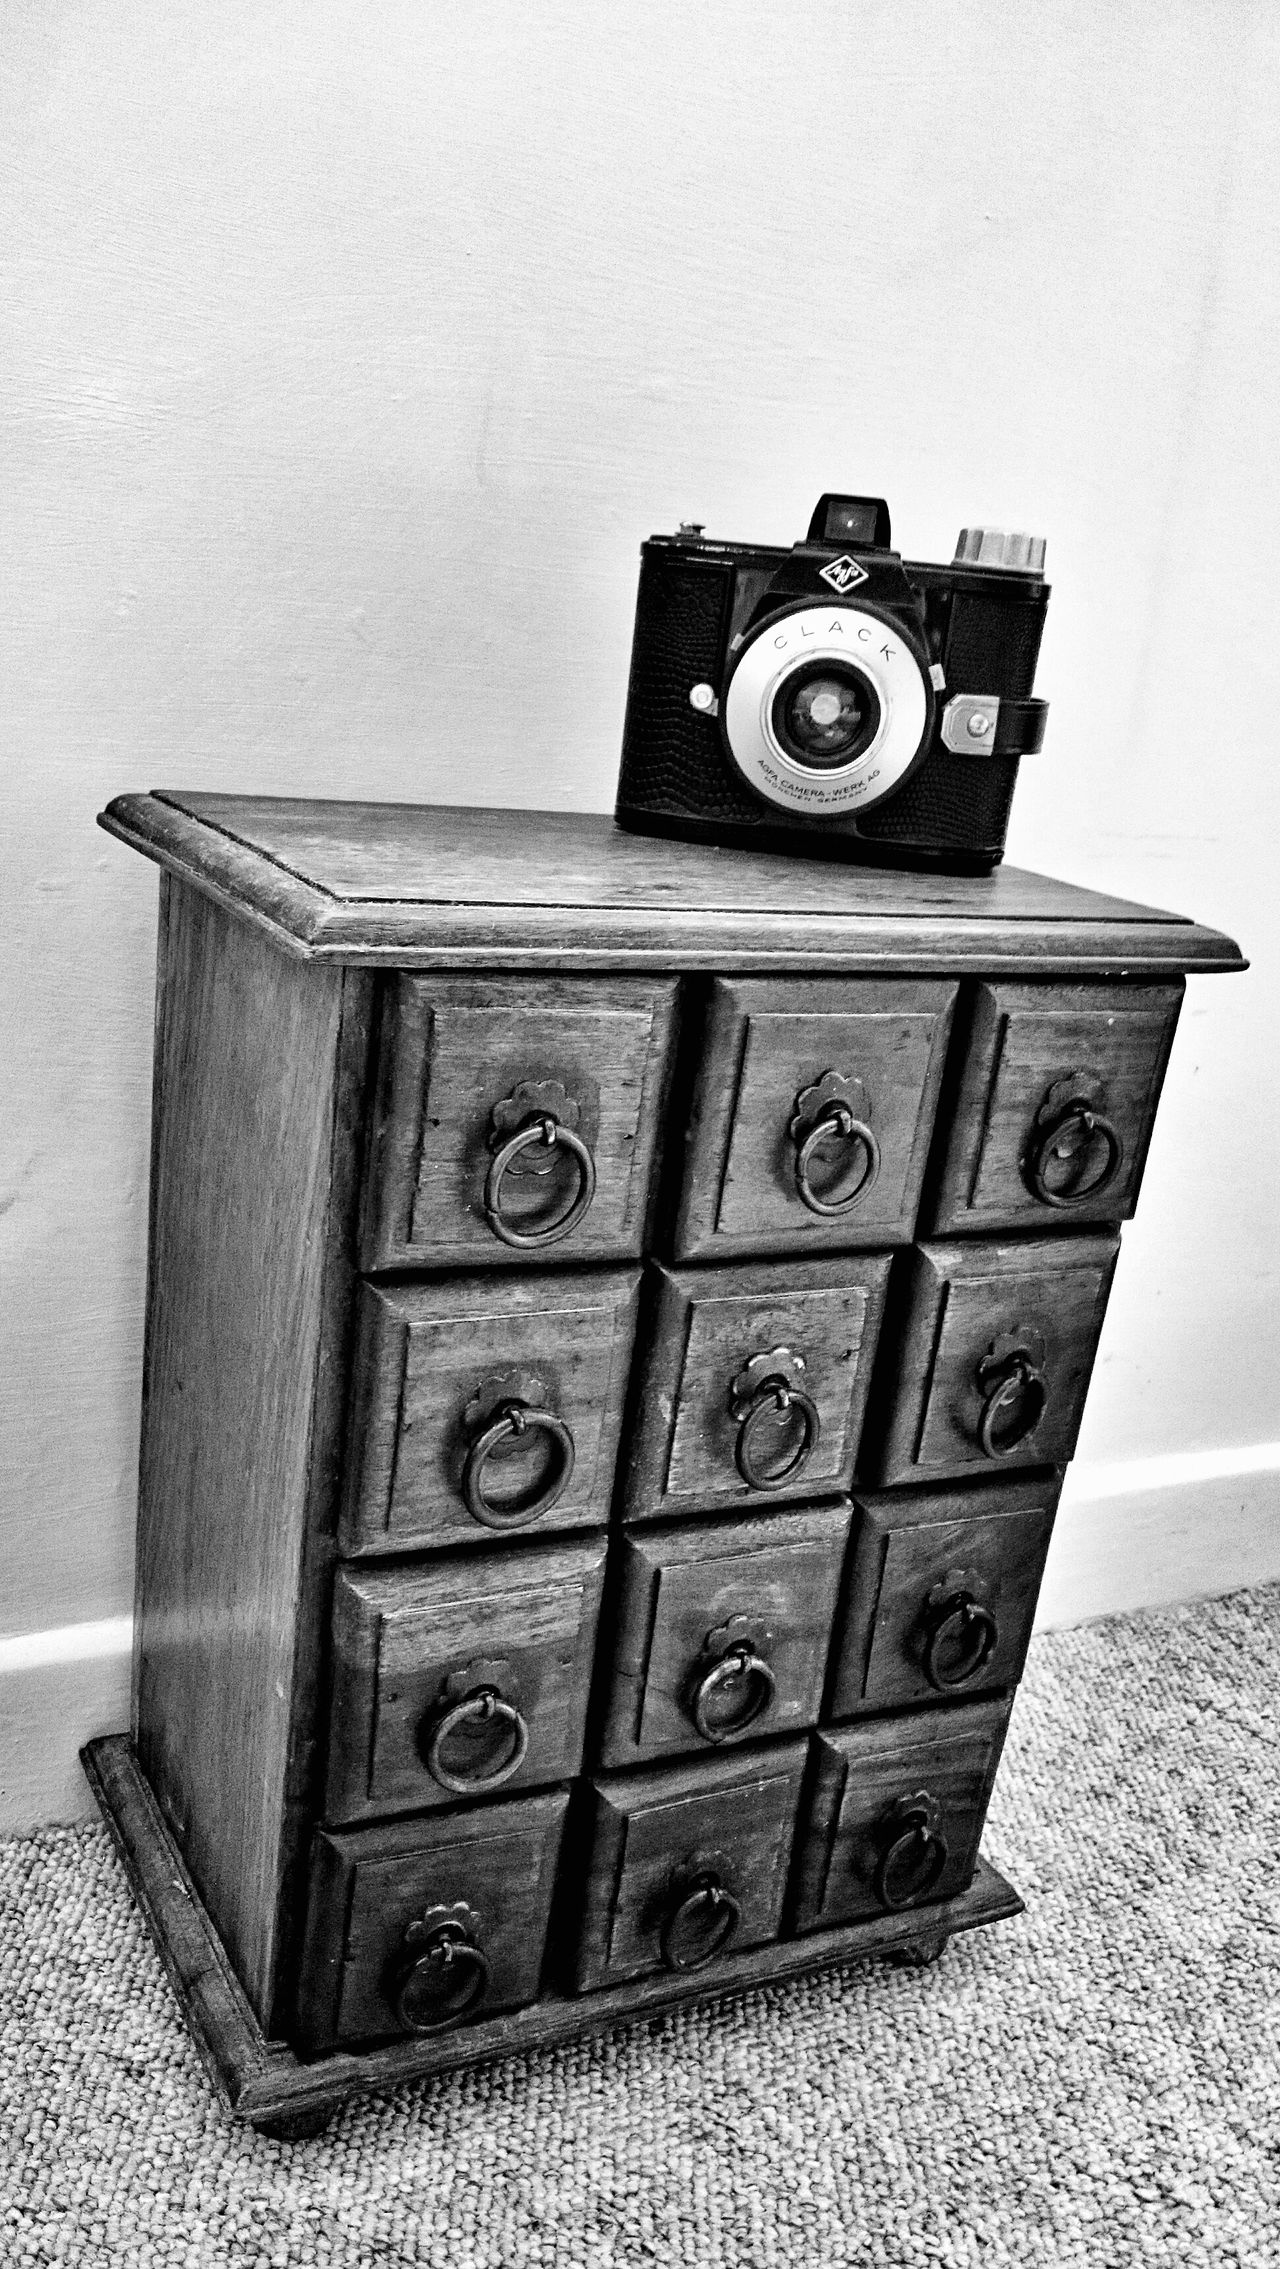 For Friends That Connect  For The Love Of Black And White Wooden Box Taking Photos Old Camera Clack HDR Light And Shadow When Boredom Strikes. Minimalism Squares And Curves Camera - Photographic Equipment Photography #photo #photos #pic #pics #tagsforlikes #picture #pictures #snapshot #art #beautiful #instagood #picoftheday #photooftheday #color #all_shots #exposure #composition #focus #capture #moment Camera Porn Camera Life. Old But Awesome Past Times